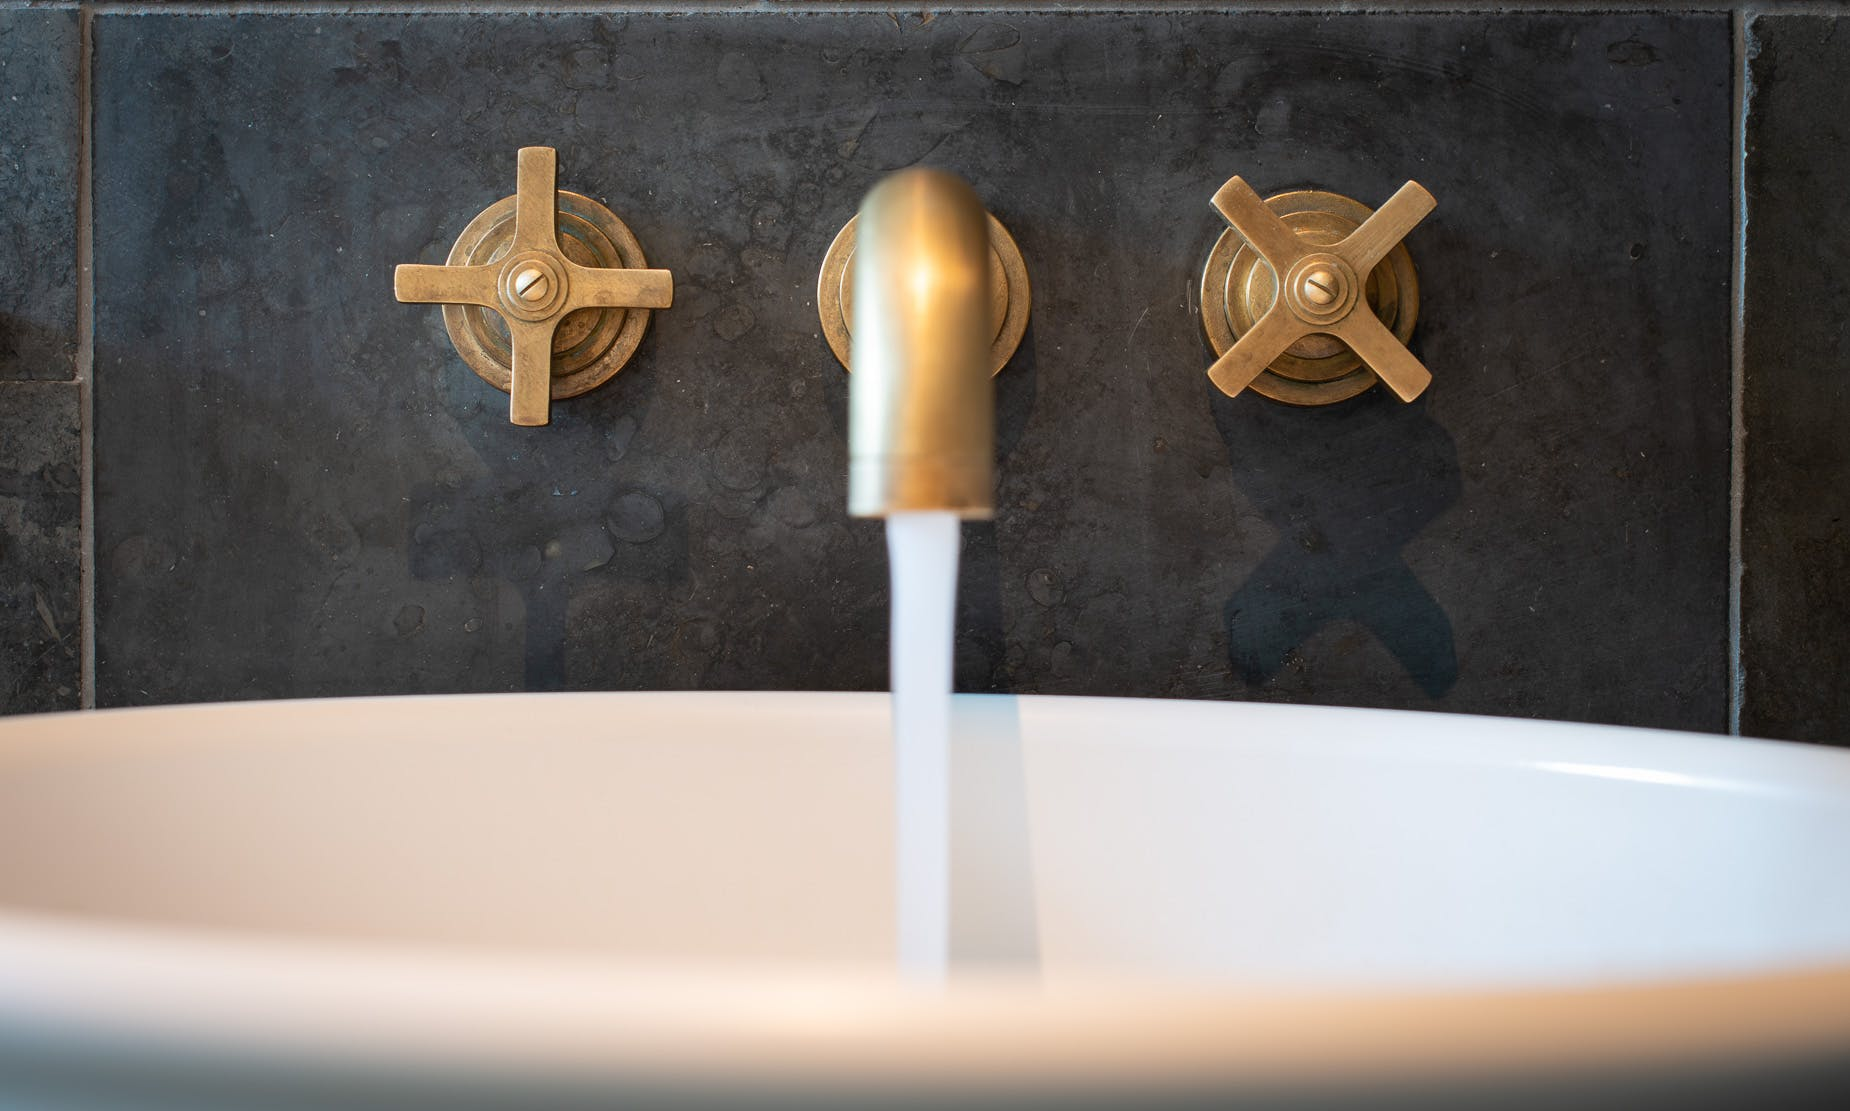 Samuel Heath Bauhaus inspired LMK Pure wall mounted tap in a natural urban brass finish showing patina.